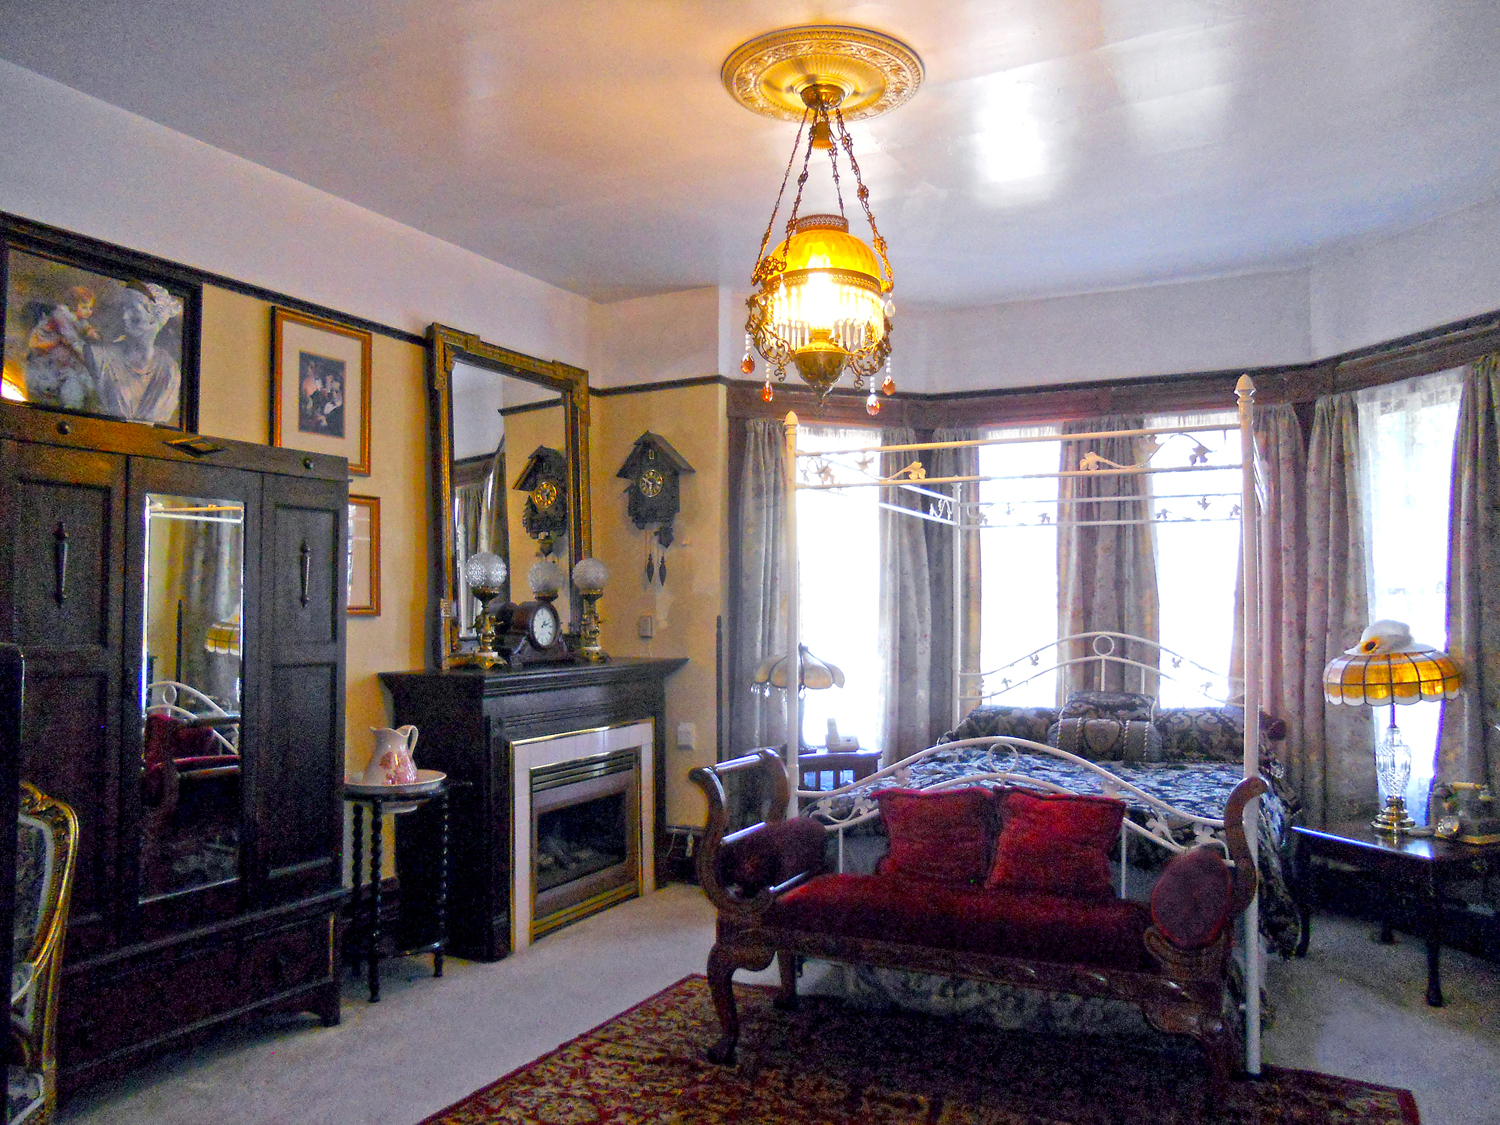 Marvelous Upstairs bedroom with bay window and vented fireplace that stays with the house